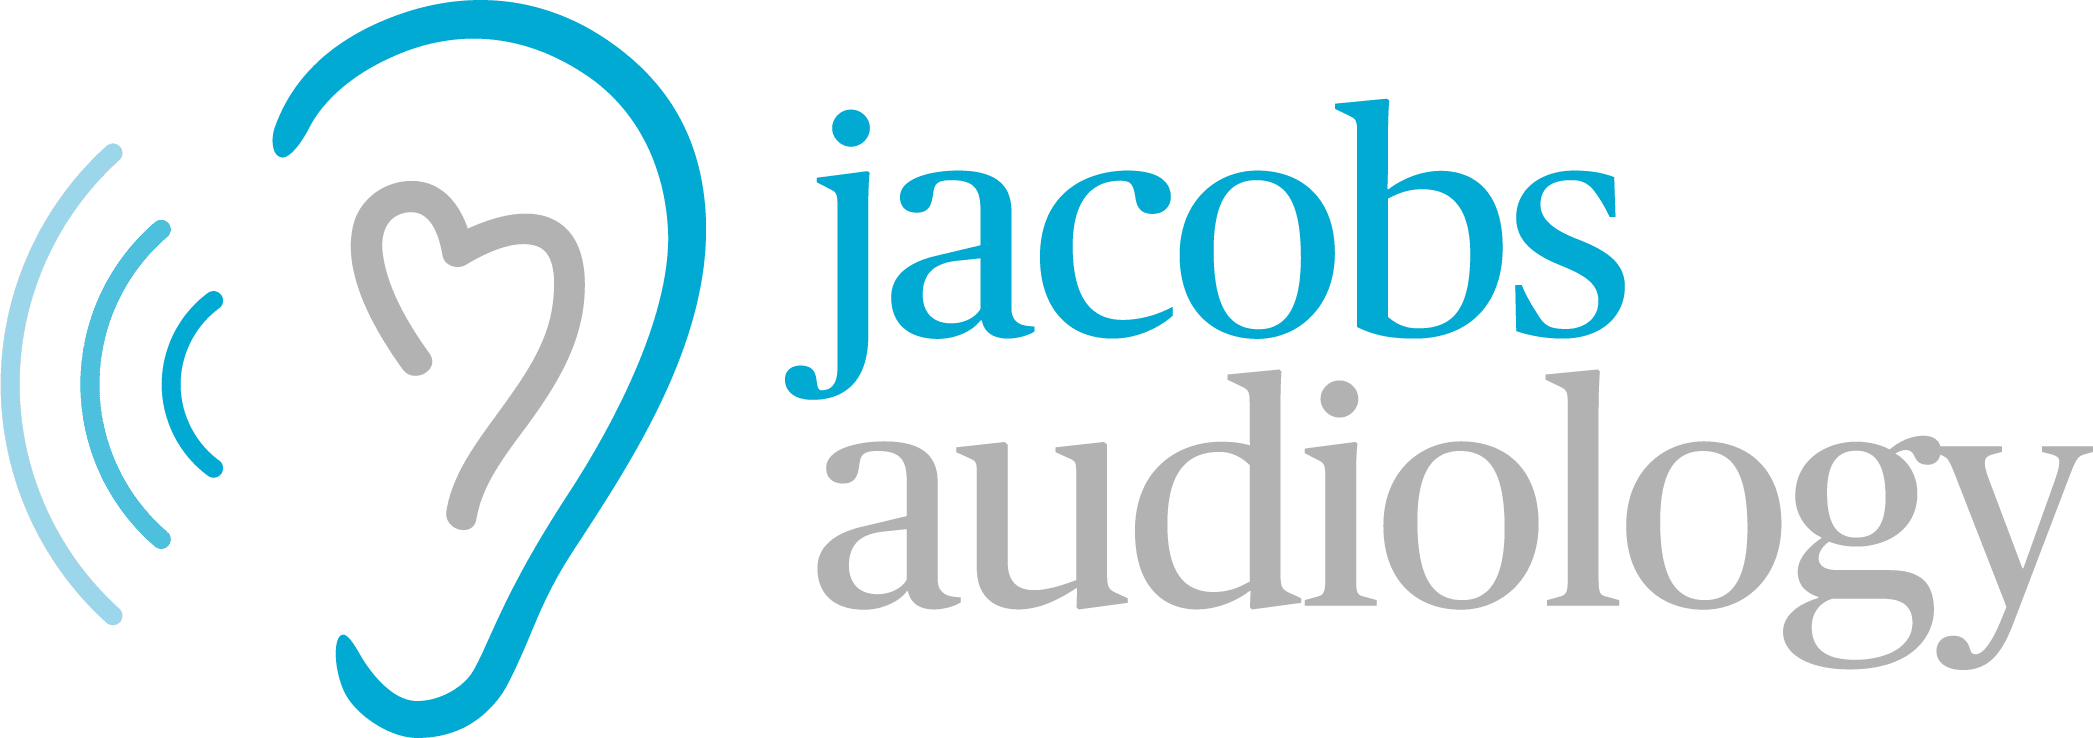 jacobs-audiology-png-logo